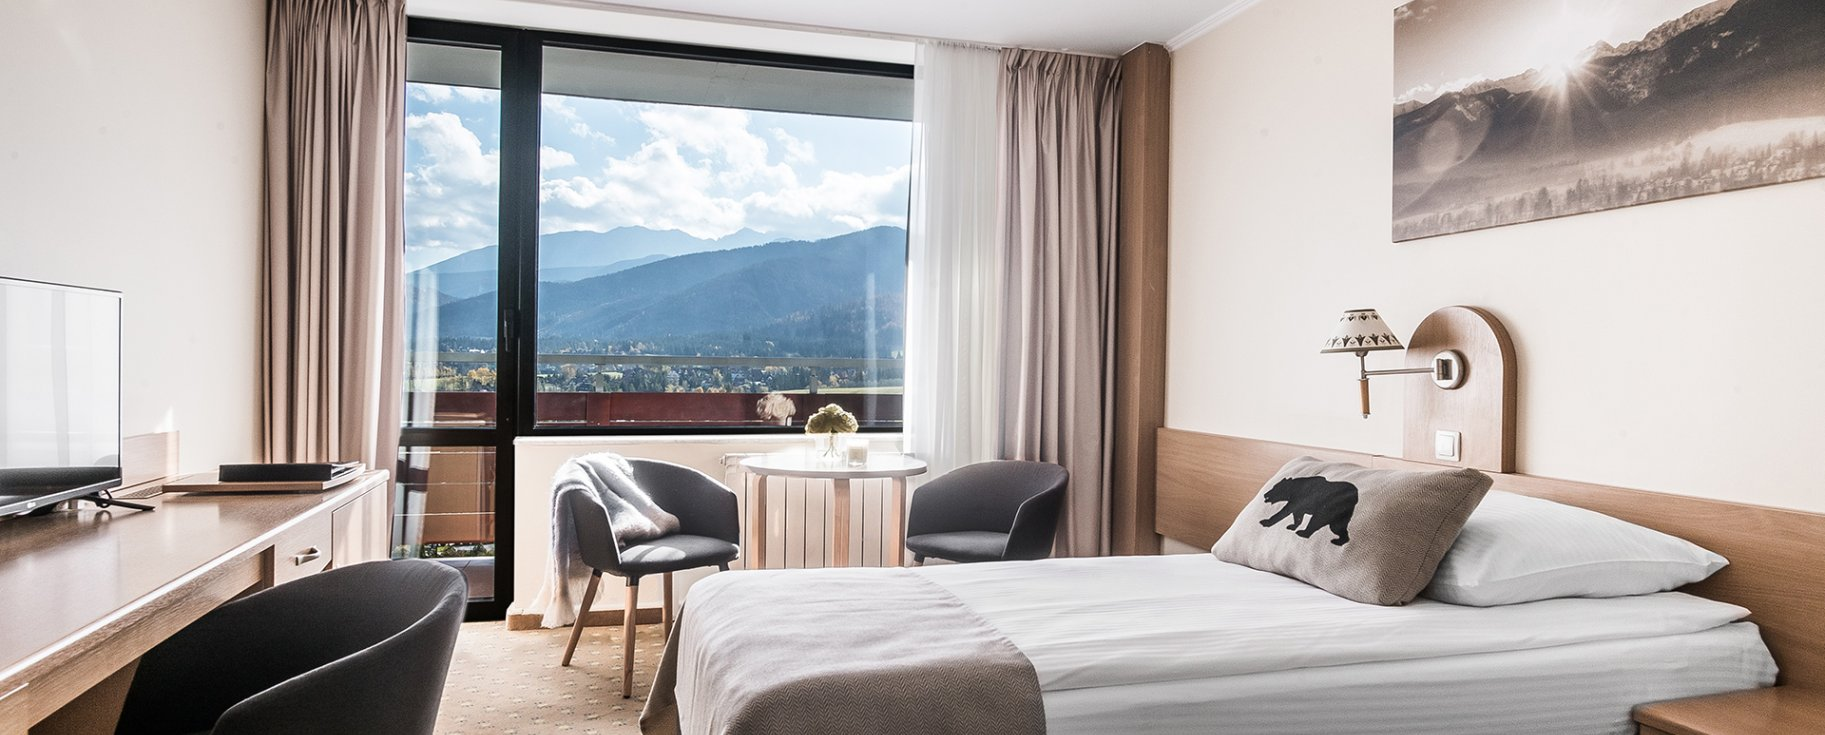 Standard Twin with balcony overlooking the mountains